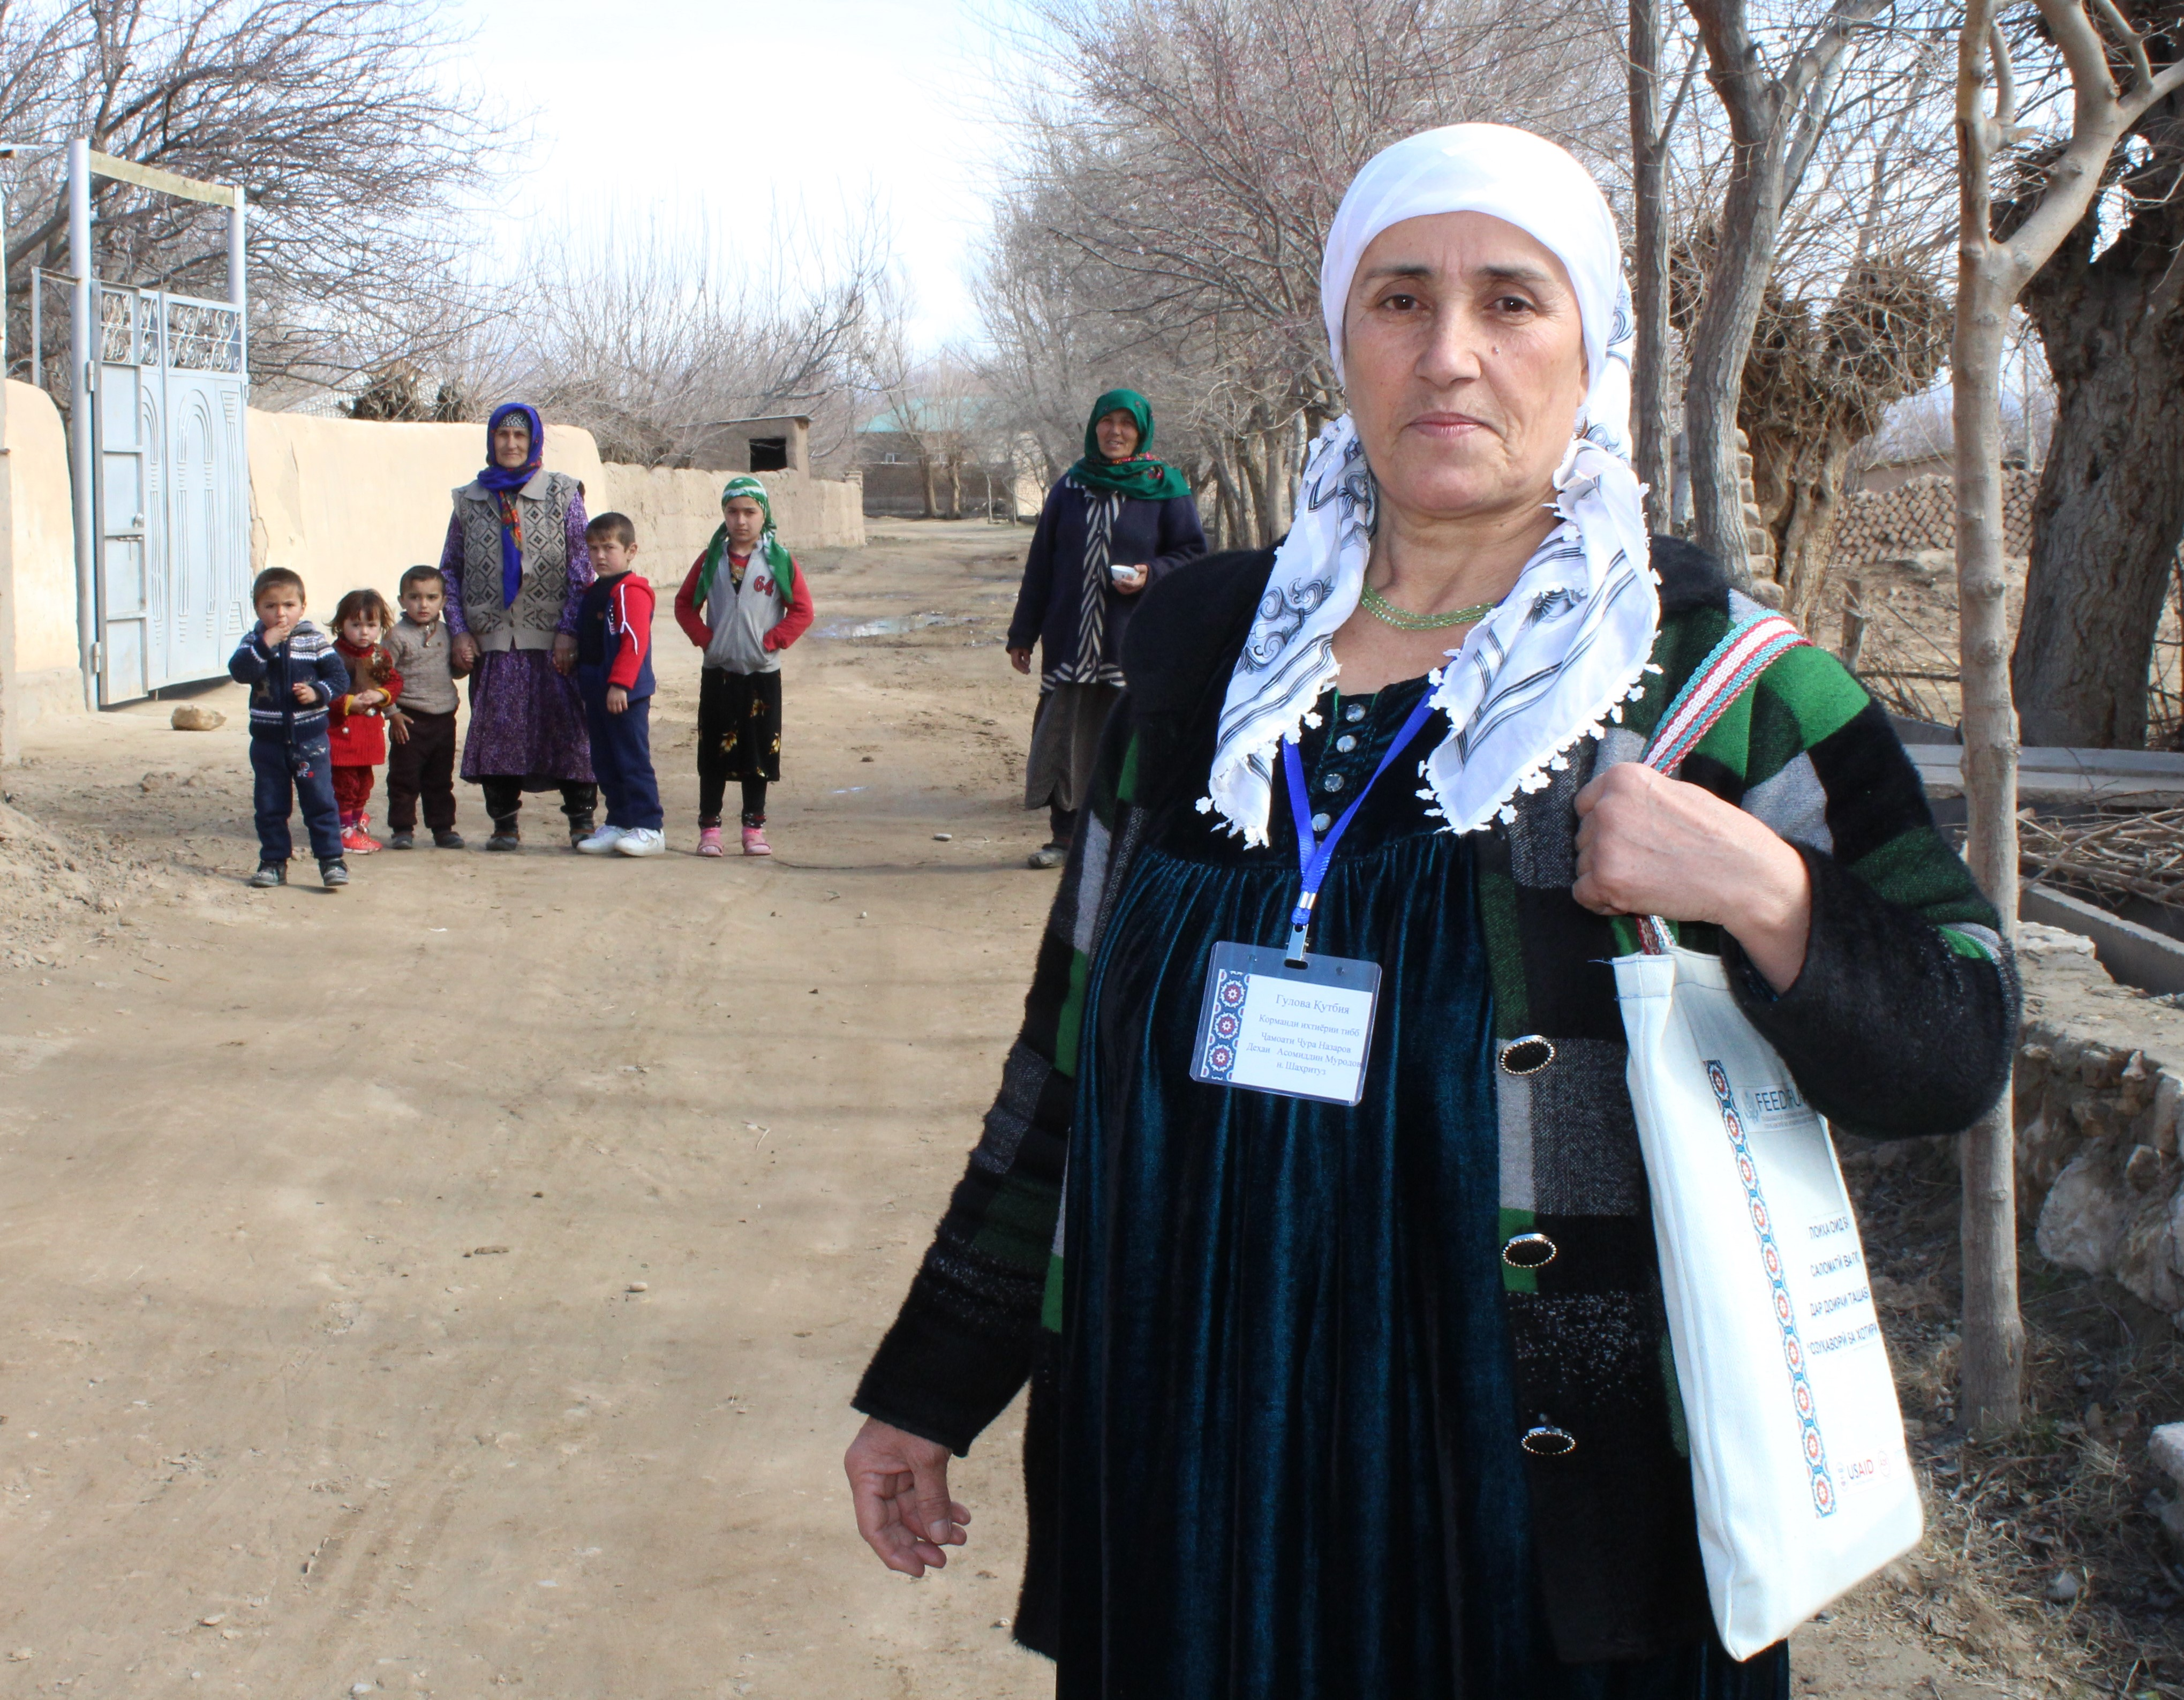 Thousands of people inKhatlon region now have greater access to health servicesand sanitation, thanks to the work of community health volunteers. Photo by Khosiyatkhon Komilova for IntraHealth International.